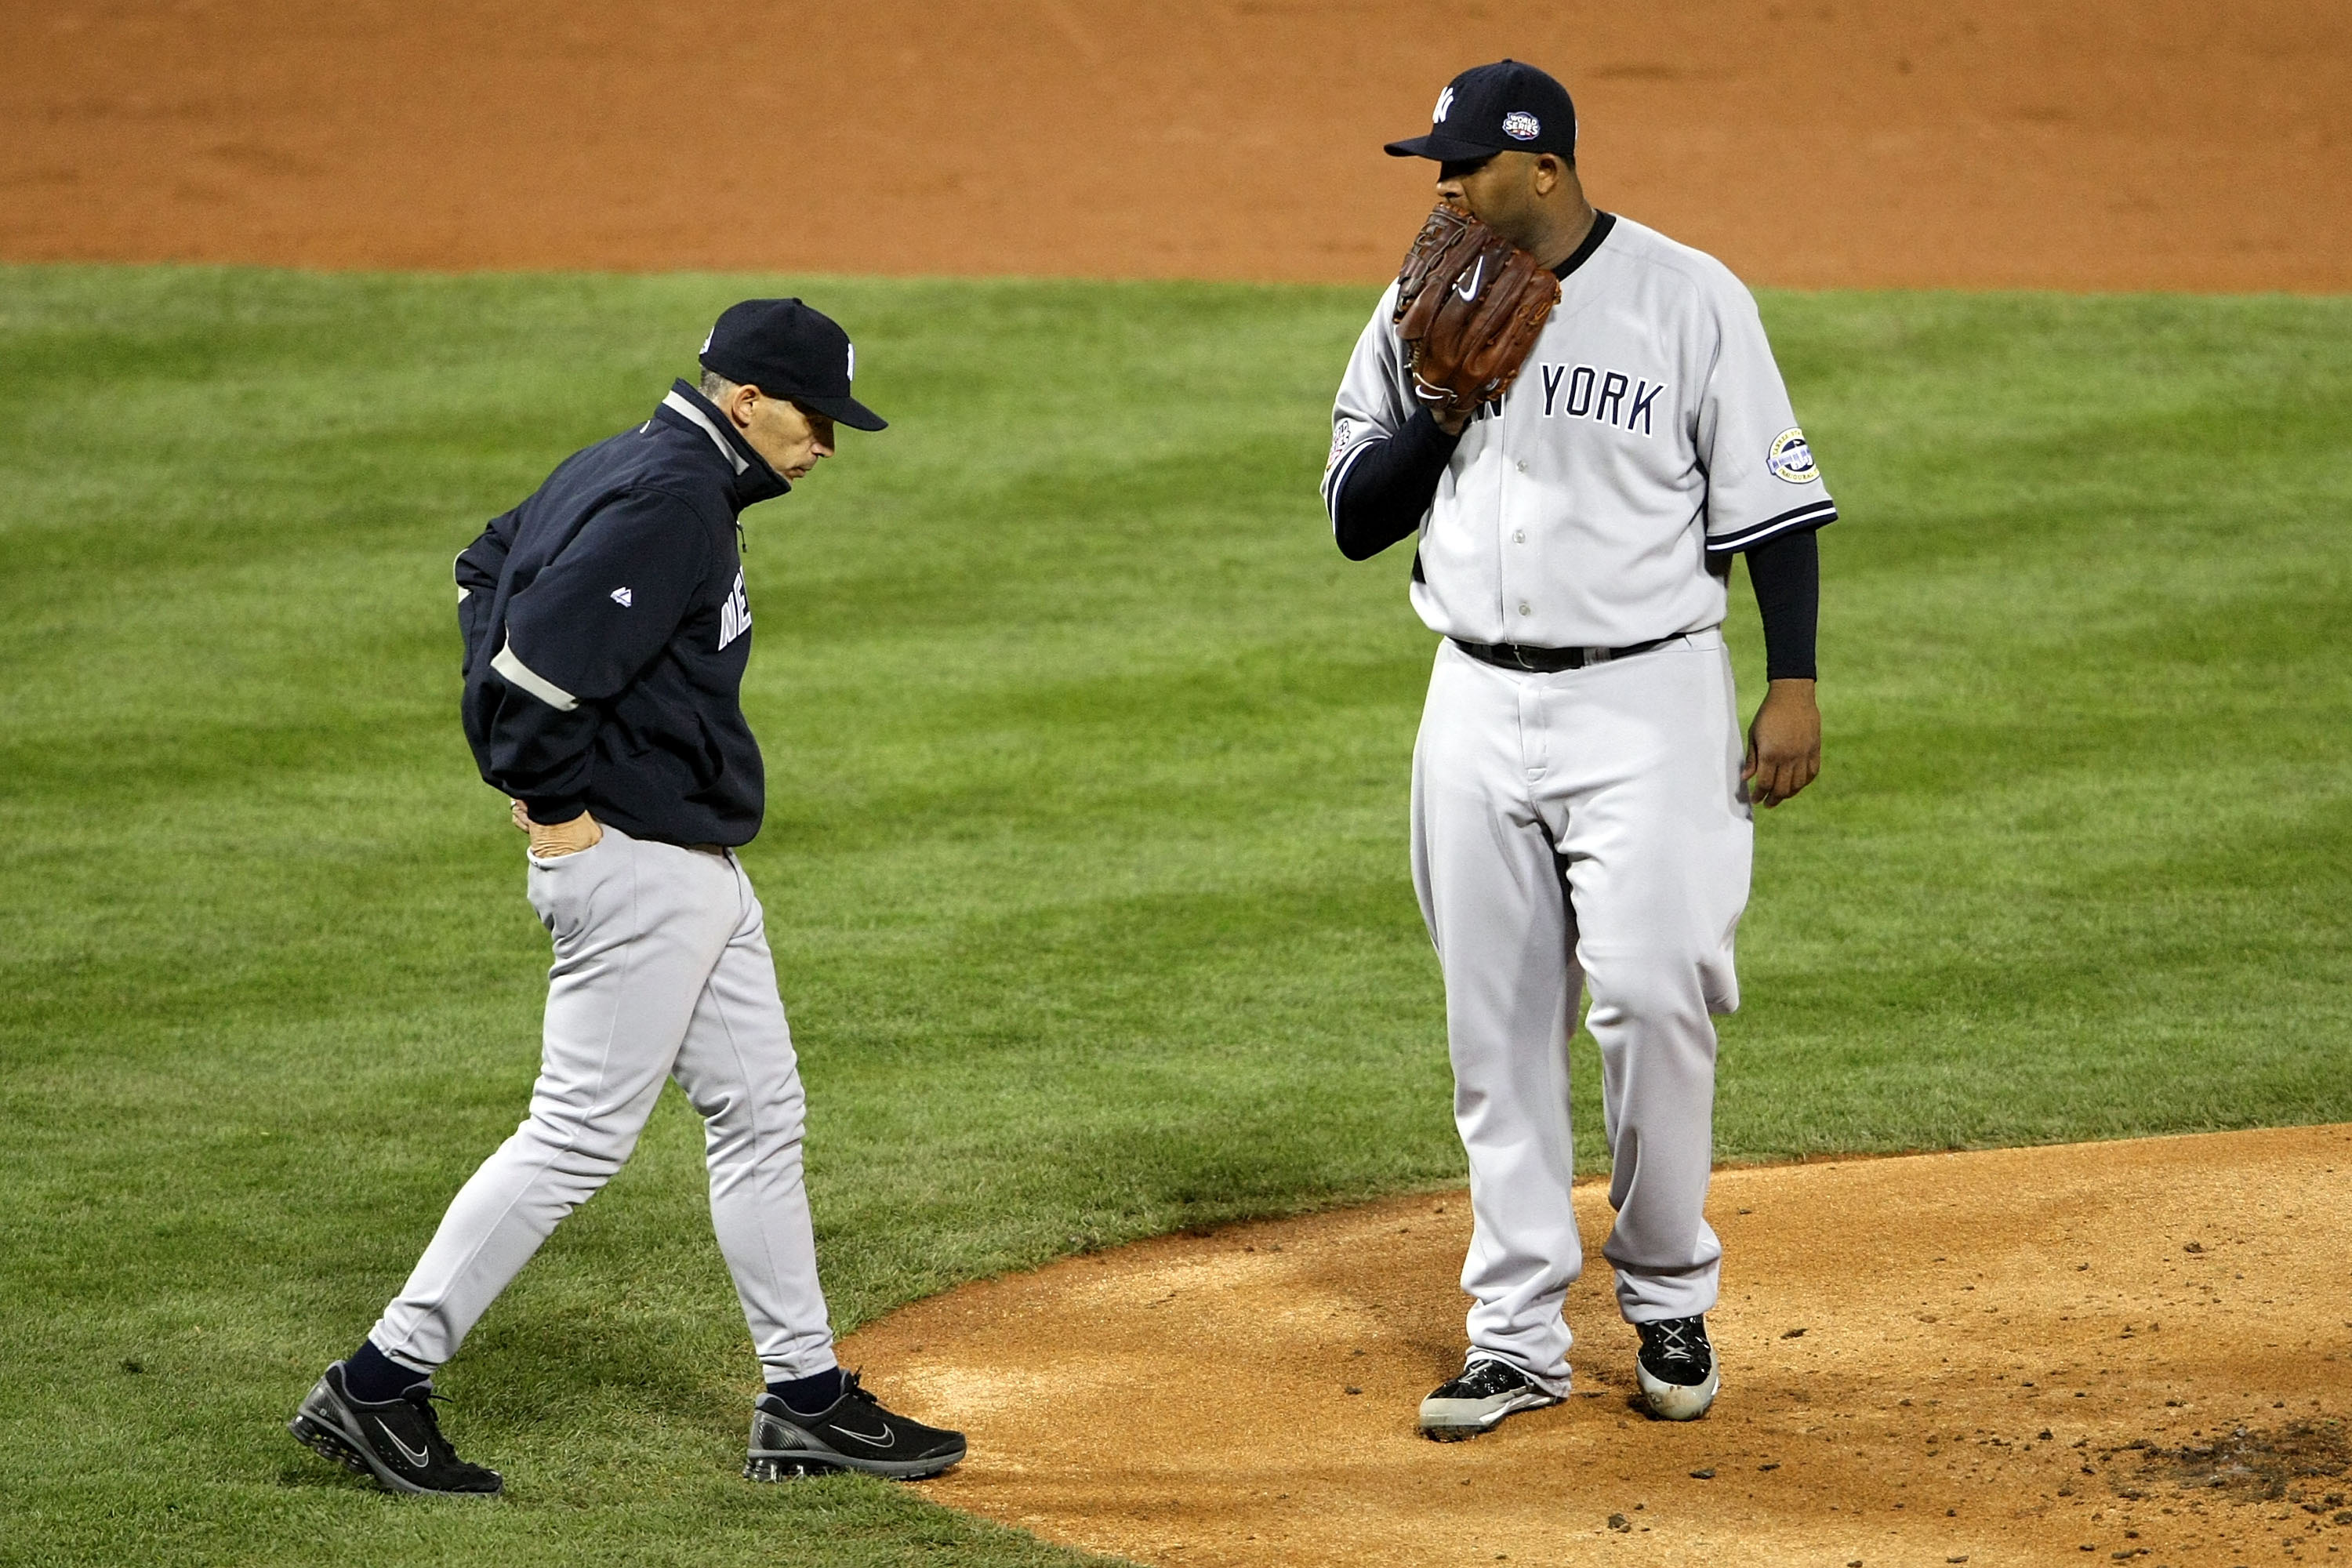 PHILADELPHIA - NOVEMBER 01:  Manager Joe Girardi of the New York Yankees walks out to talk to starting pitcher C.C. Sabathia #52 in the bottom of the first inning against the Philadelphia Phillies in Game Four of the 2009 MLB World Series at Citizens Bank Park on November 1, 2009 in Philadelphia, Pennsylvania.  (Photo by Nick Laham/Getty Images) *** Local Caption *** Joe Girardi;C.C. Sabathia